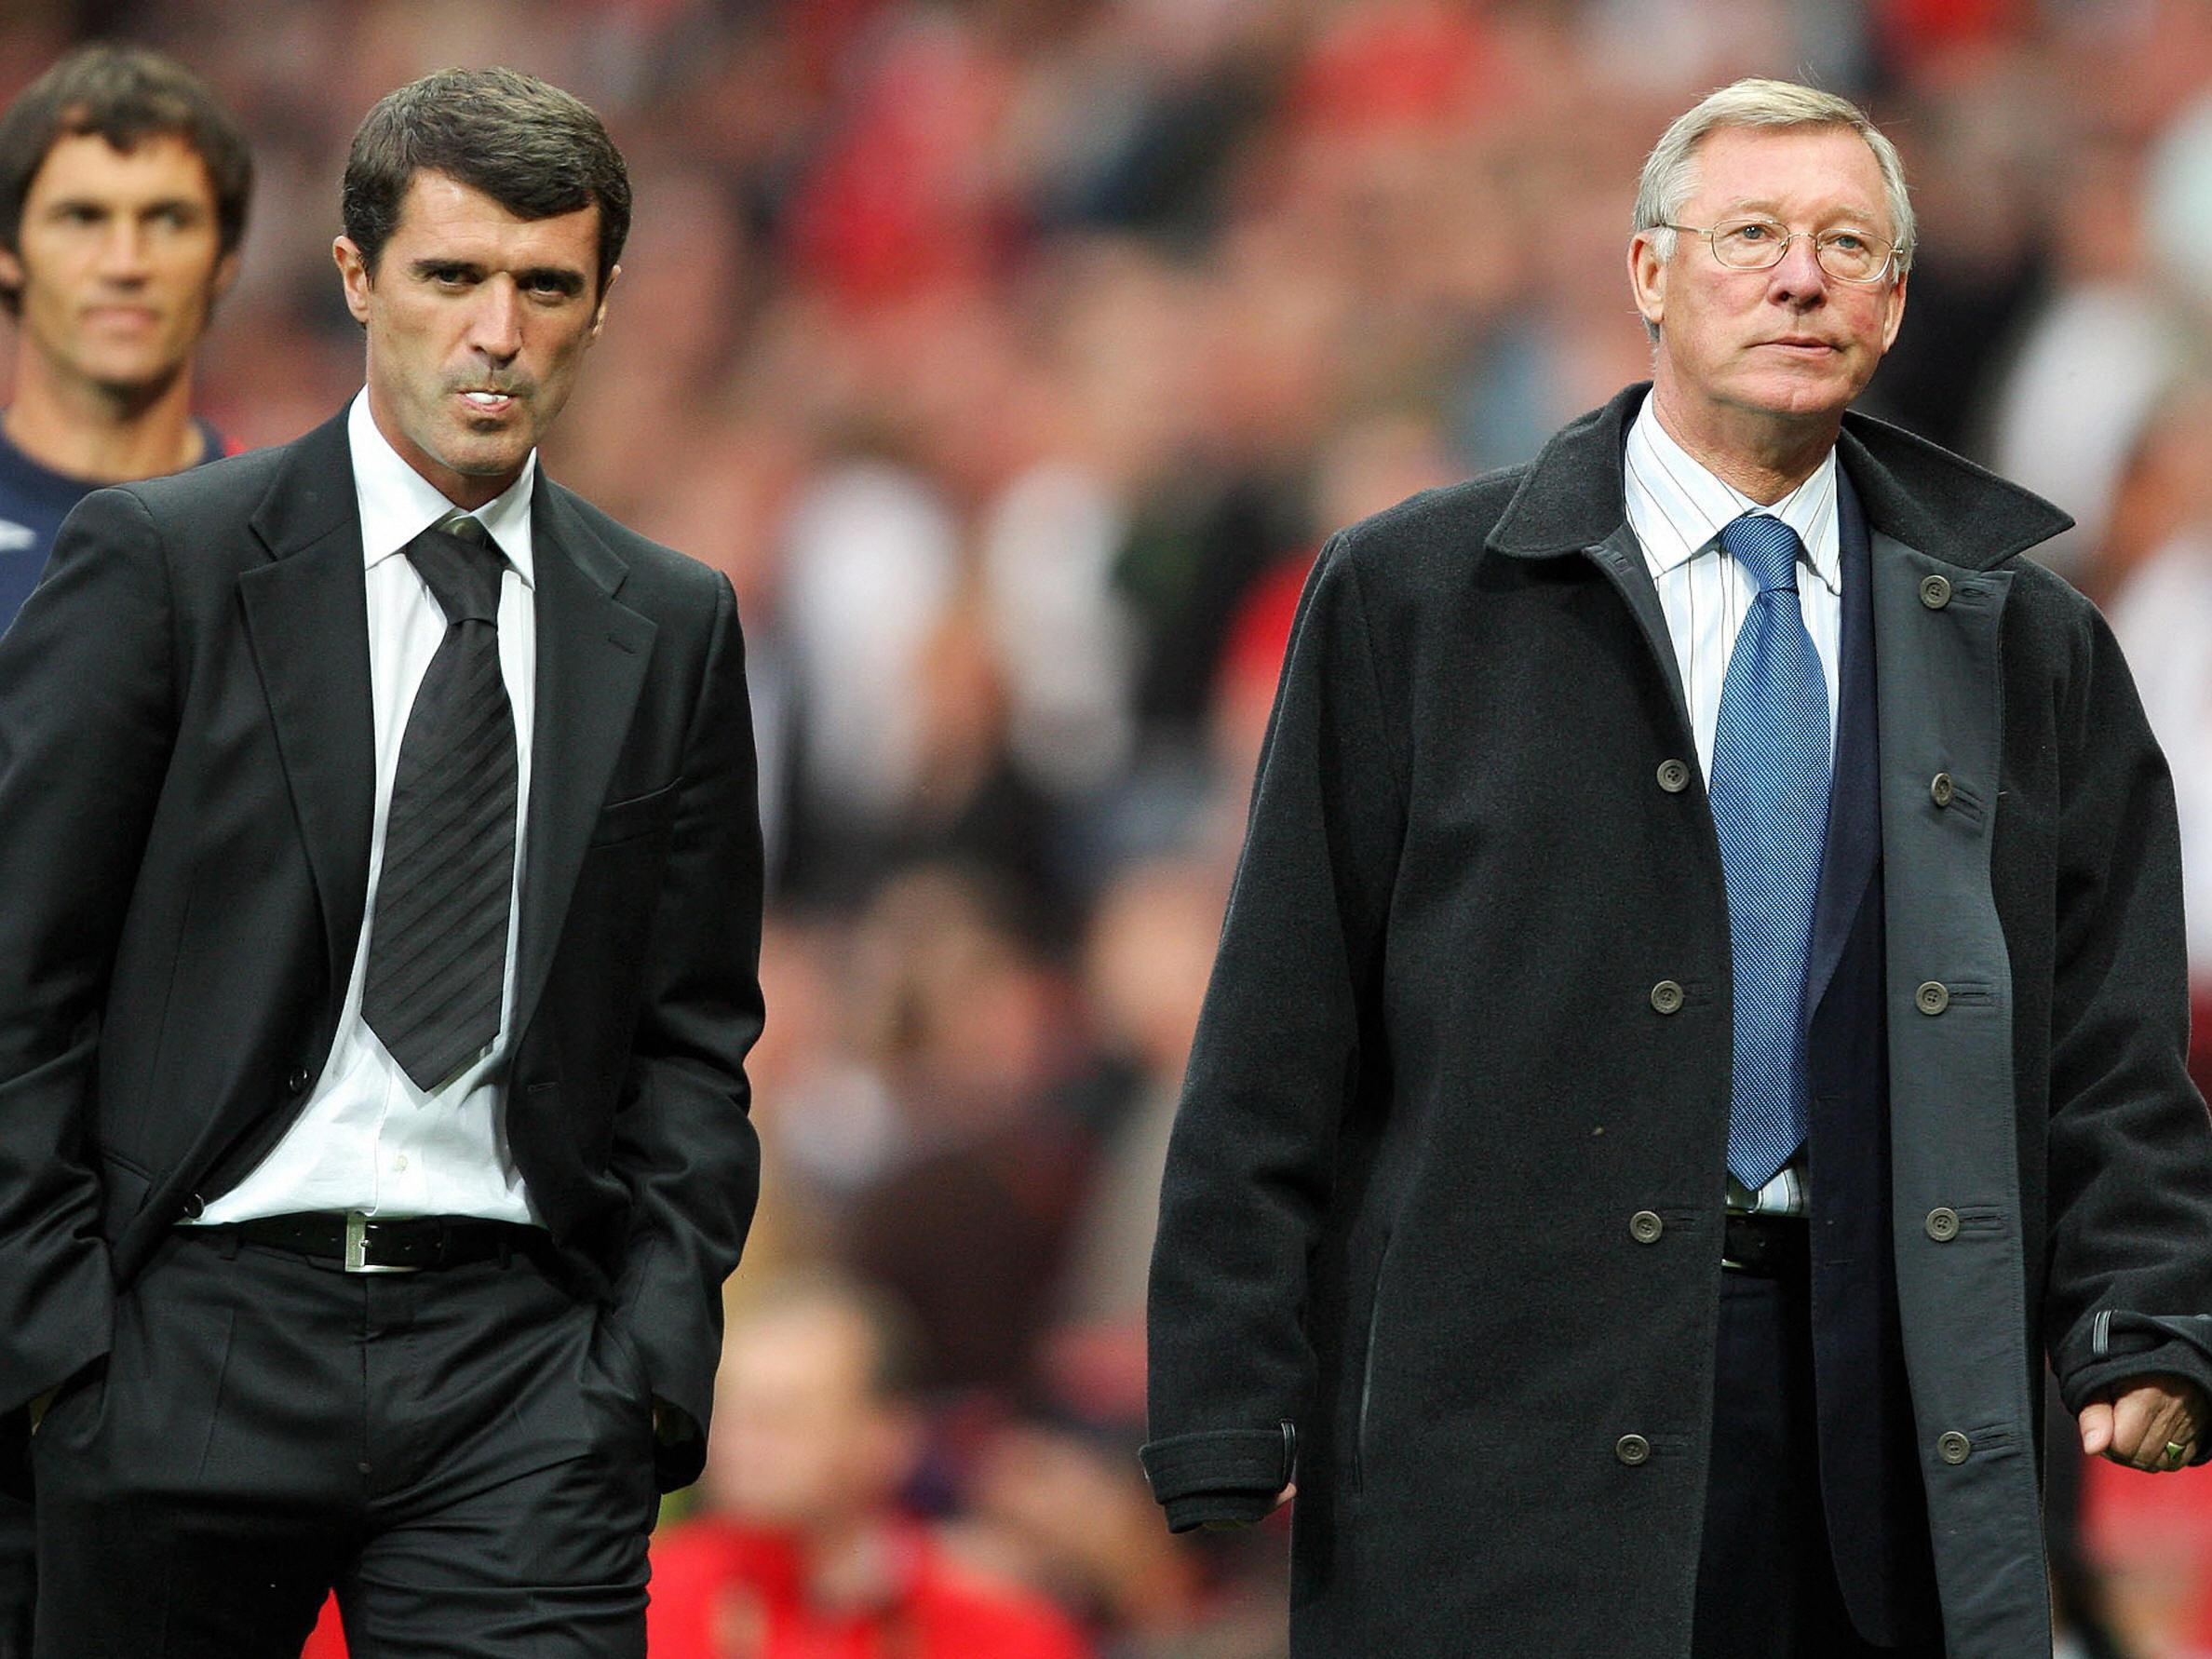 Manchester United news: Roy Keane accuses Sir Alex Ferguson of nepotism as 14-year feud reignites